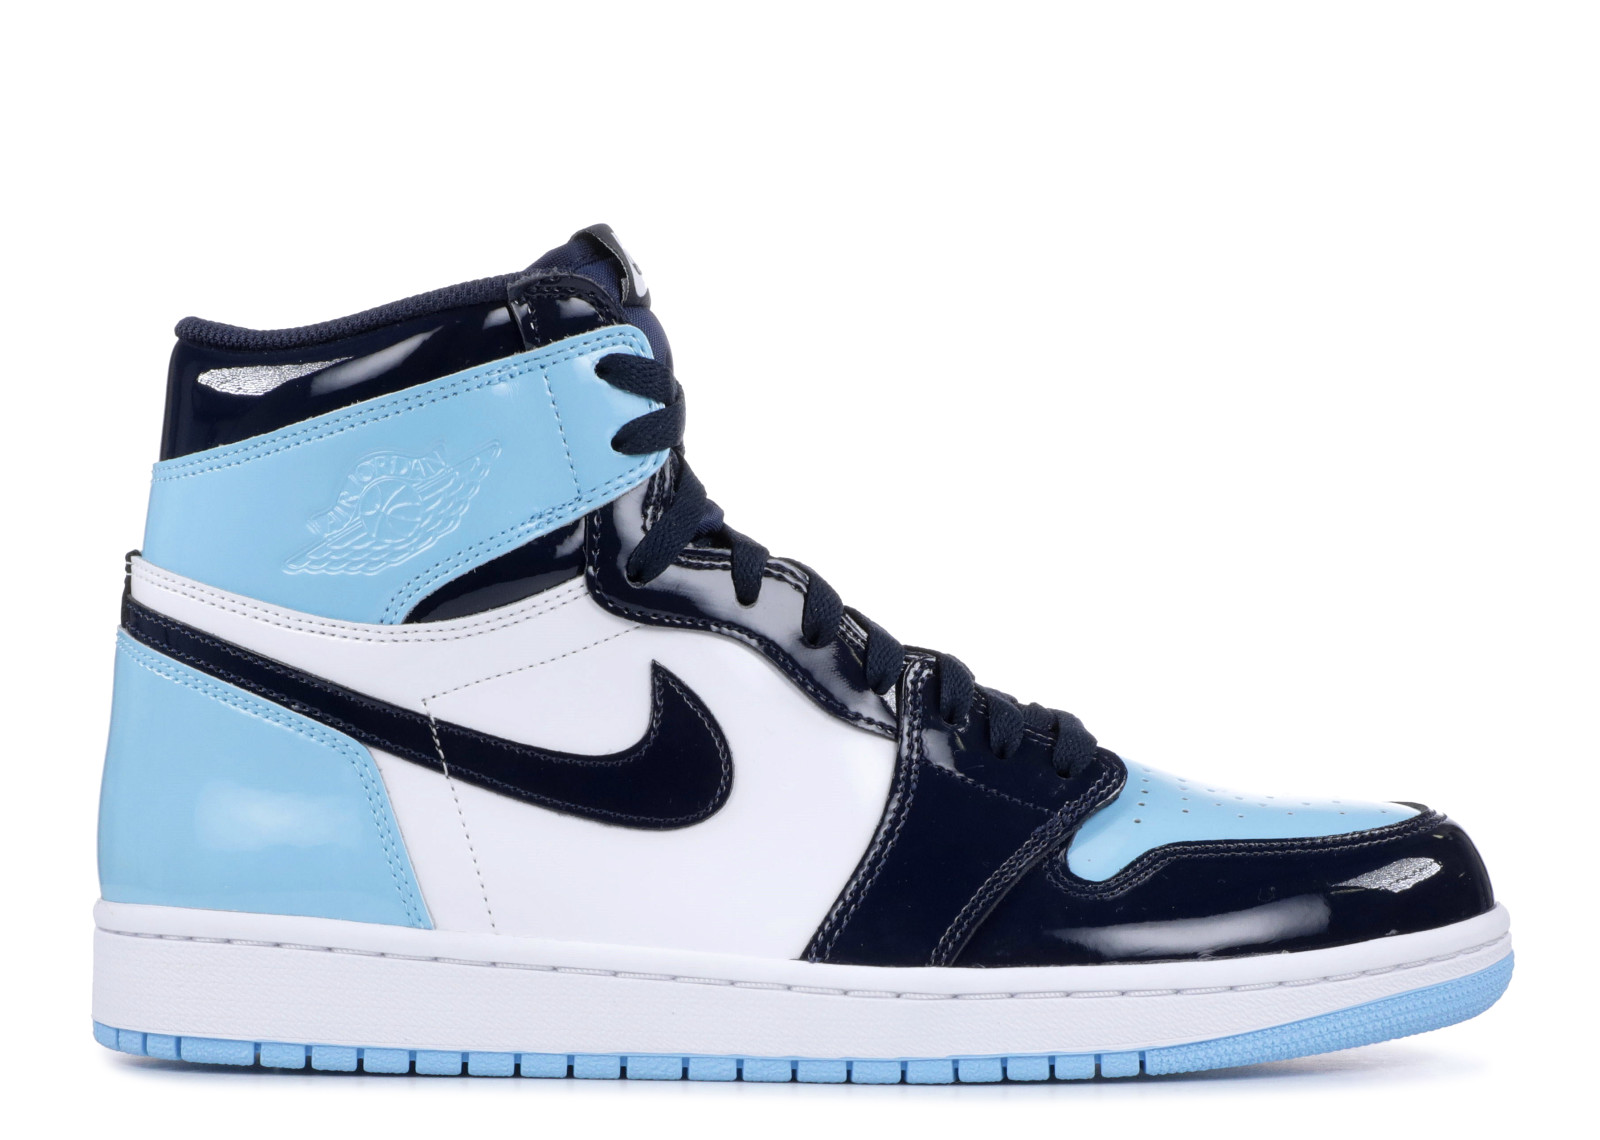 Air Jordan 1 Retro High OG Obsidian/Blue Chill-White